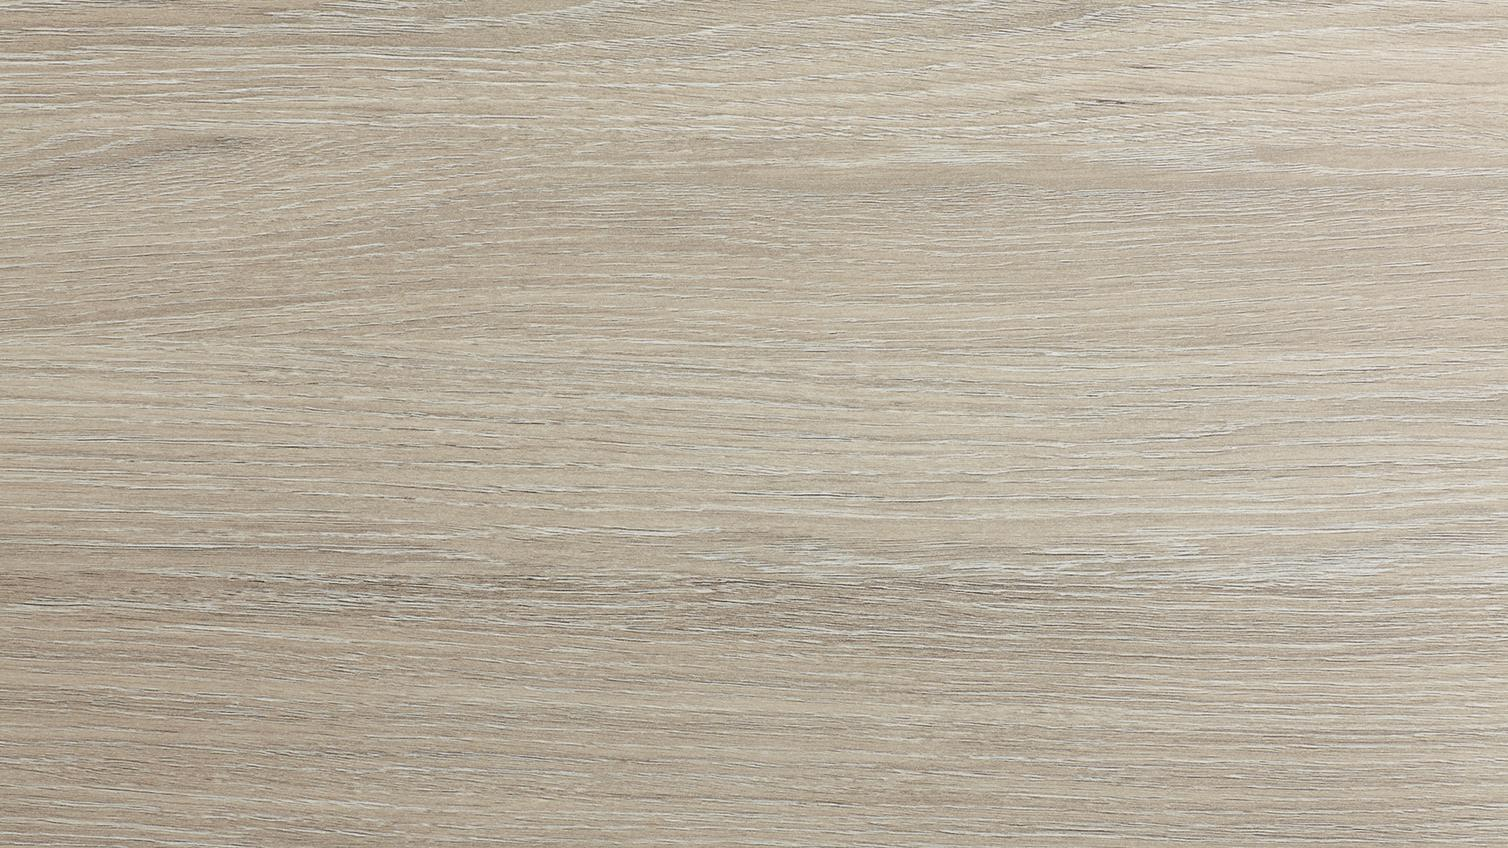 Howdens 3m X 600mm Textured Grey Oak Effect Laminate